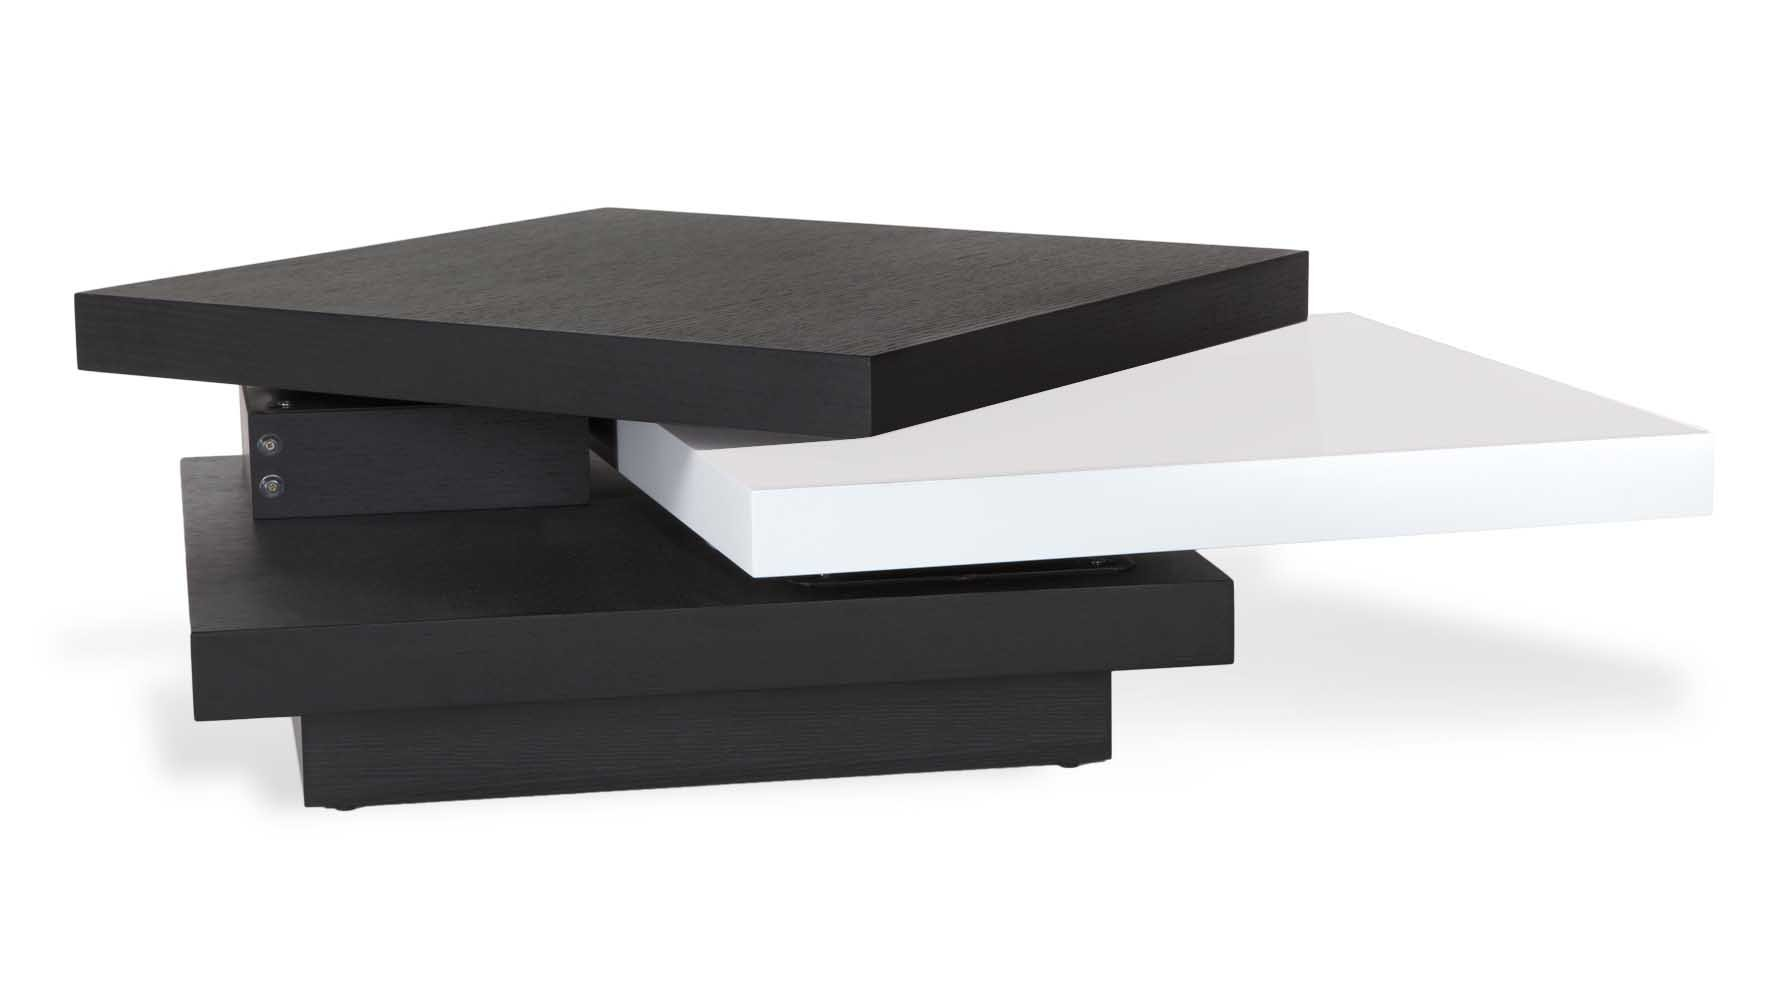 Floyd black and white coffee table with rotating shelf zuri floyd black and white coffee table with rotating shelf zuri furniture geotapseo Image collections